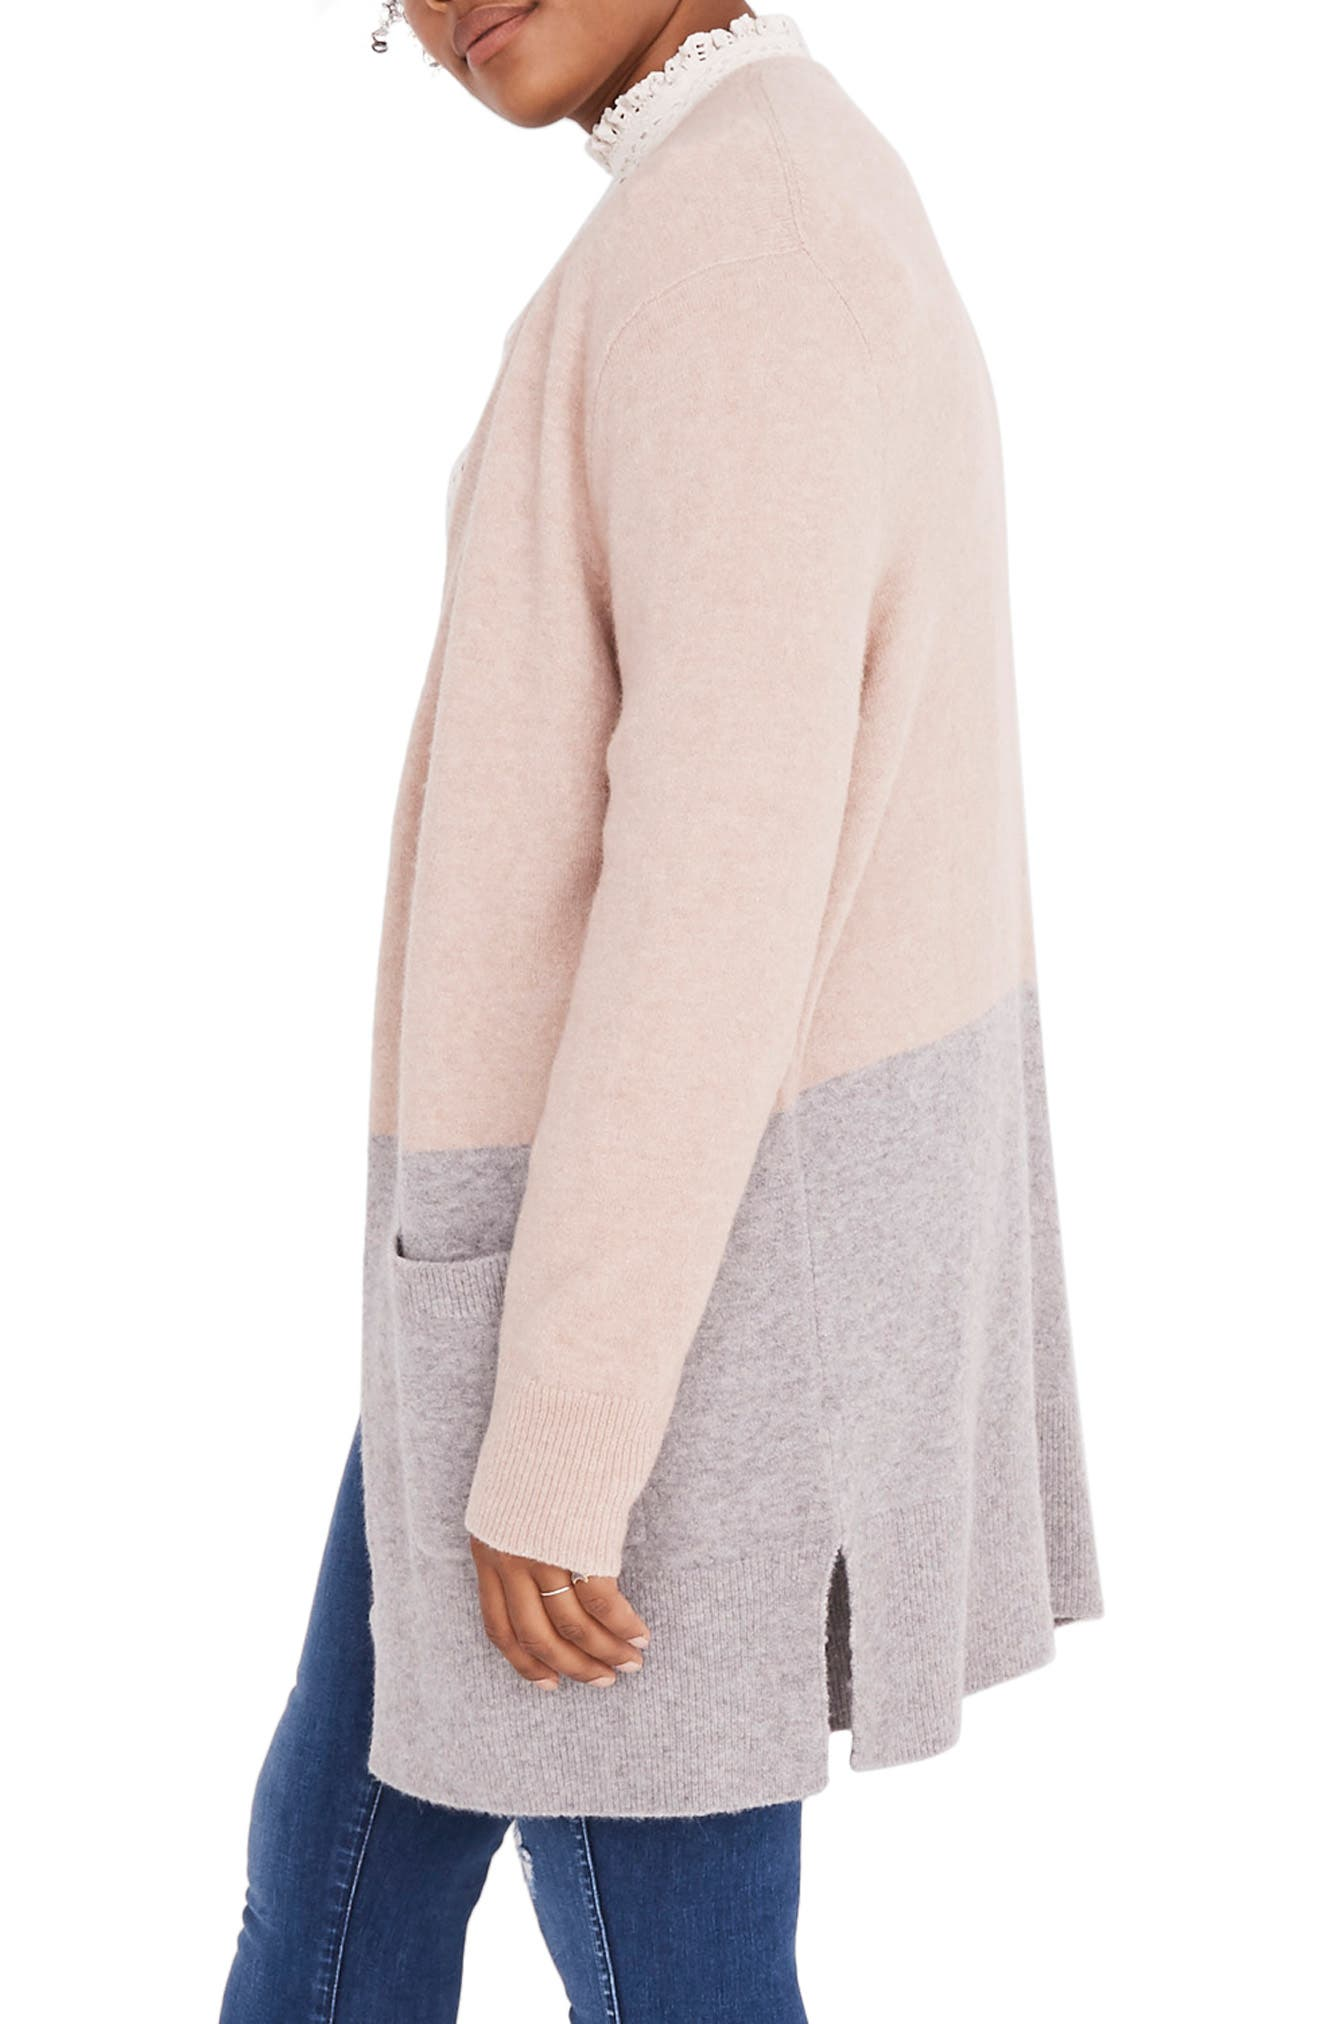 MADEWELL,                             Kent Colorblock Cardigan Sweater,                             Alternate thumbnail 7, color,                             250